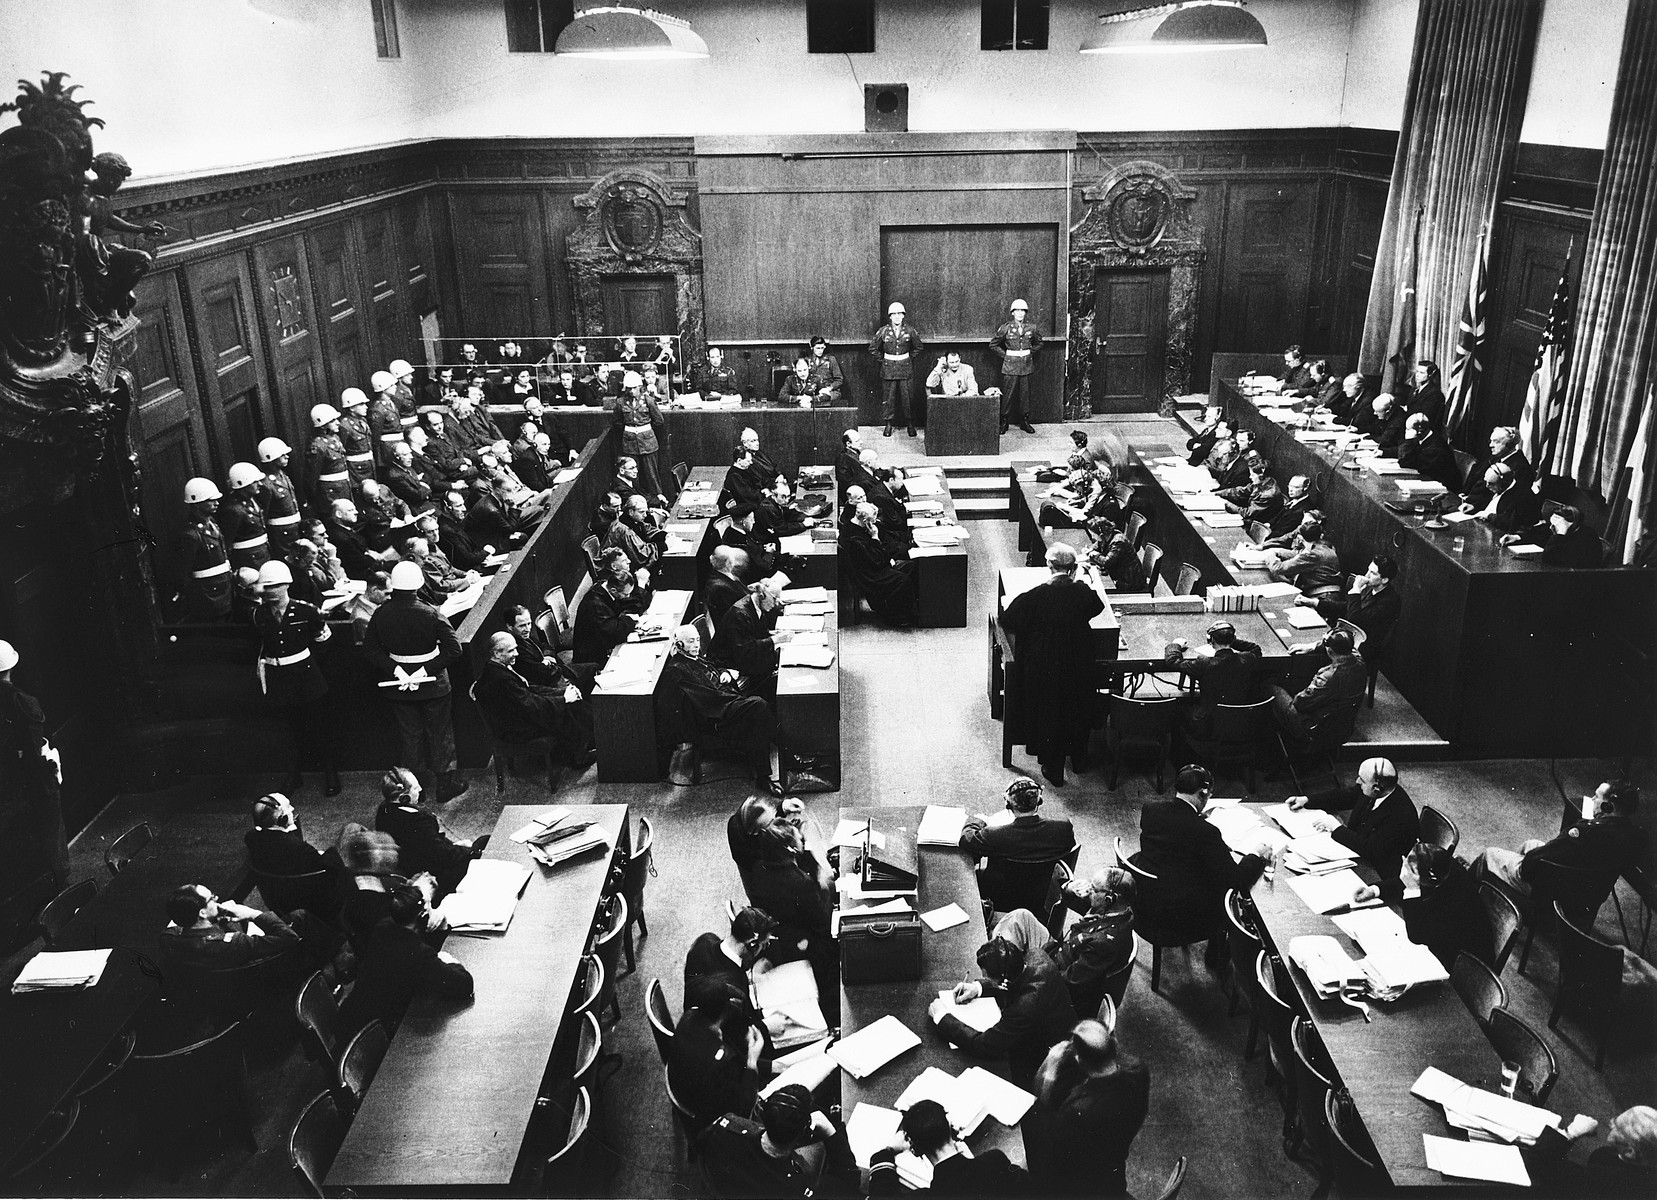 View of the courtroom of the International Military Tribunal in Nuremberg, as seen from the back of the courtroom.  Hermann Goering is at the stand.